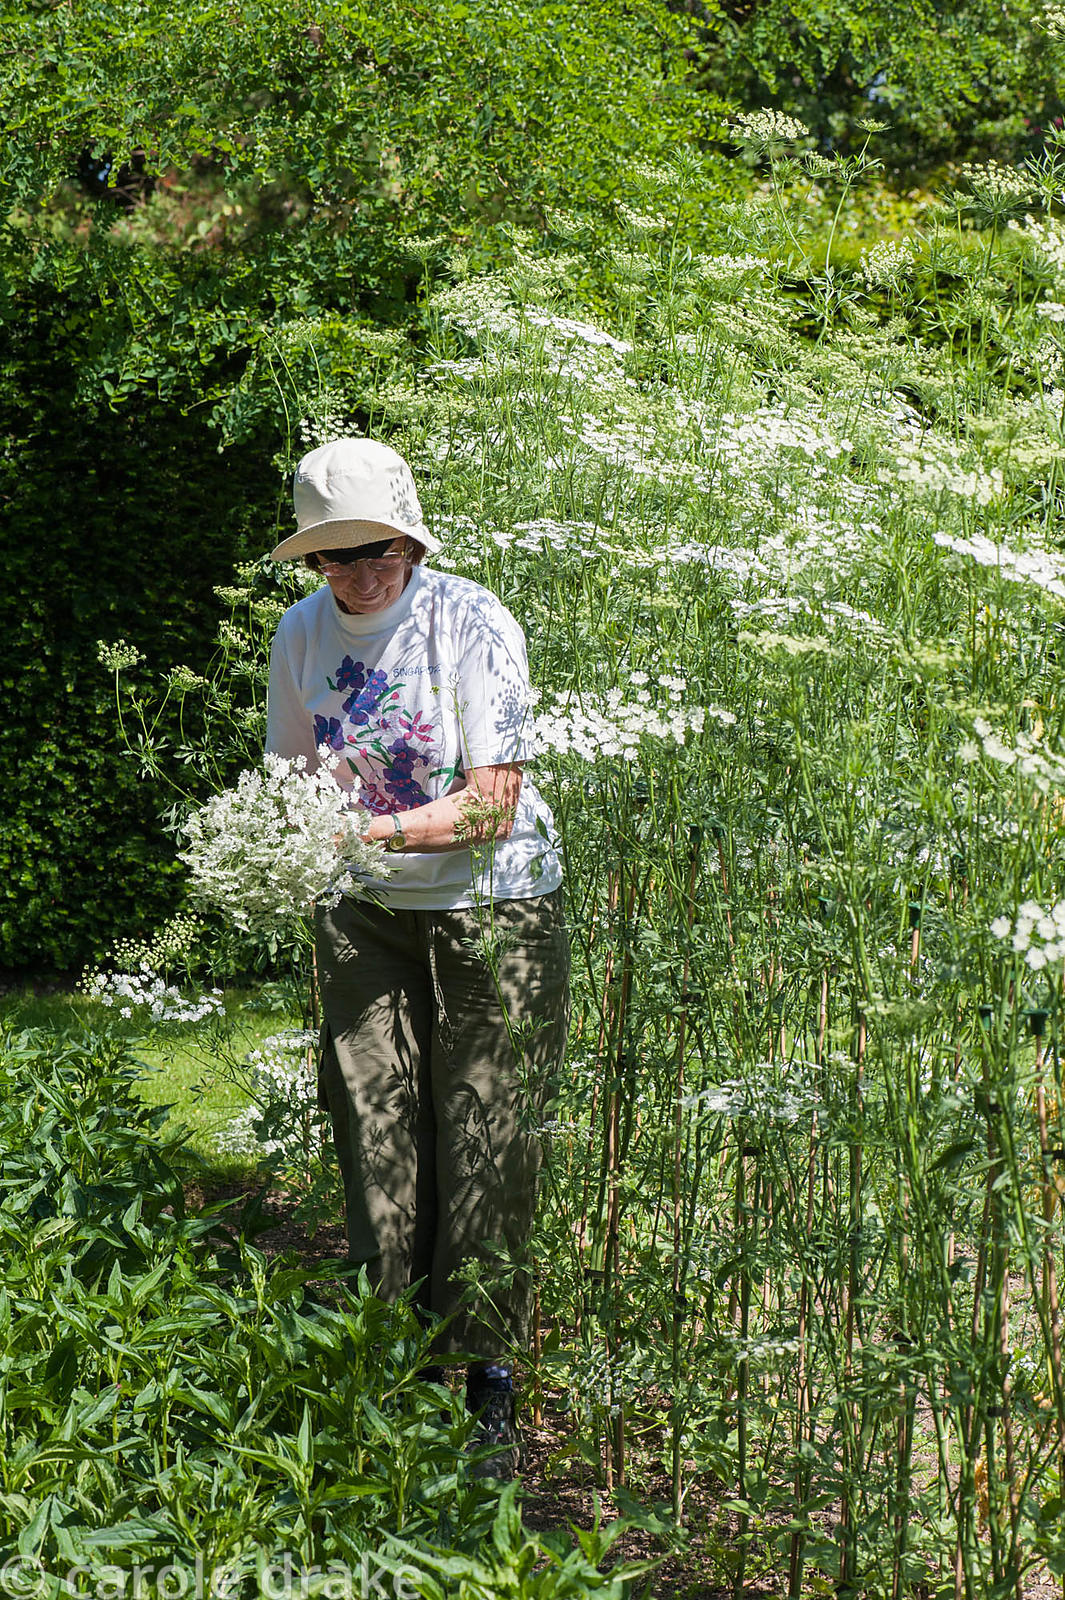 A volunteer cuts Ammi majus. Cotehele, St Dominick, nr Saltash, Cornwall, UK